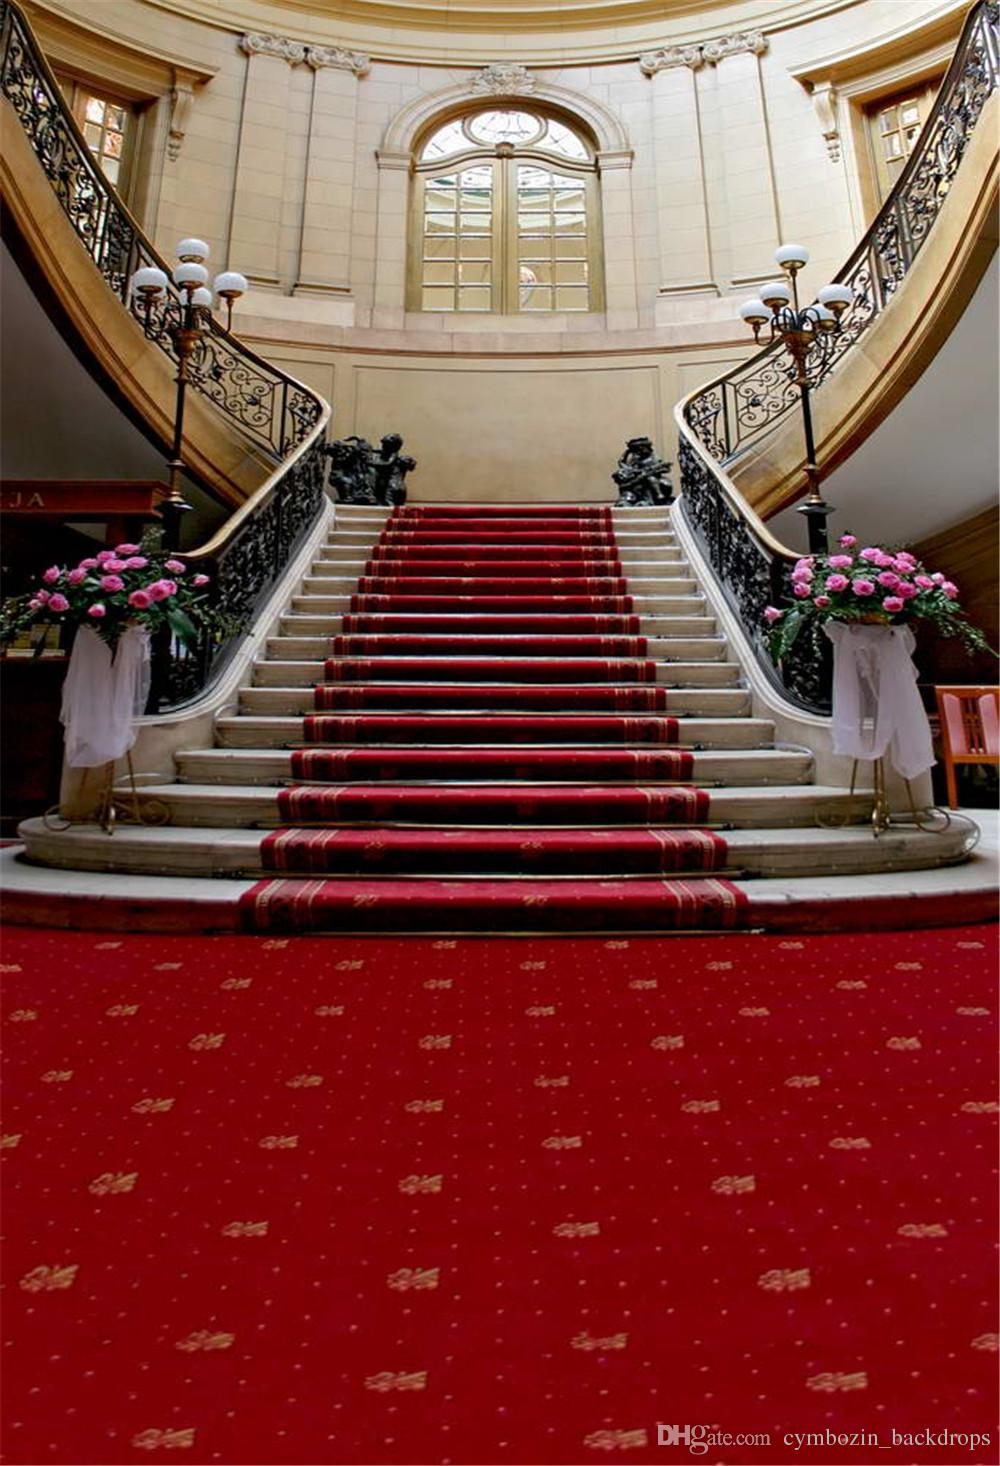 2018 Interior Staircase Wedding Party Photography Backdrop Printed Windows  Stairs Pink Flowers Red Carpet Photo Booth Background From  Cymbozin_backdrops, ...